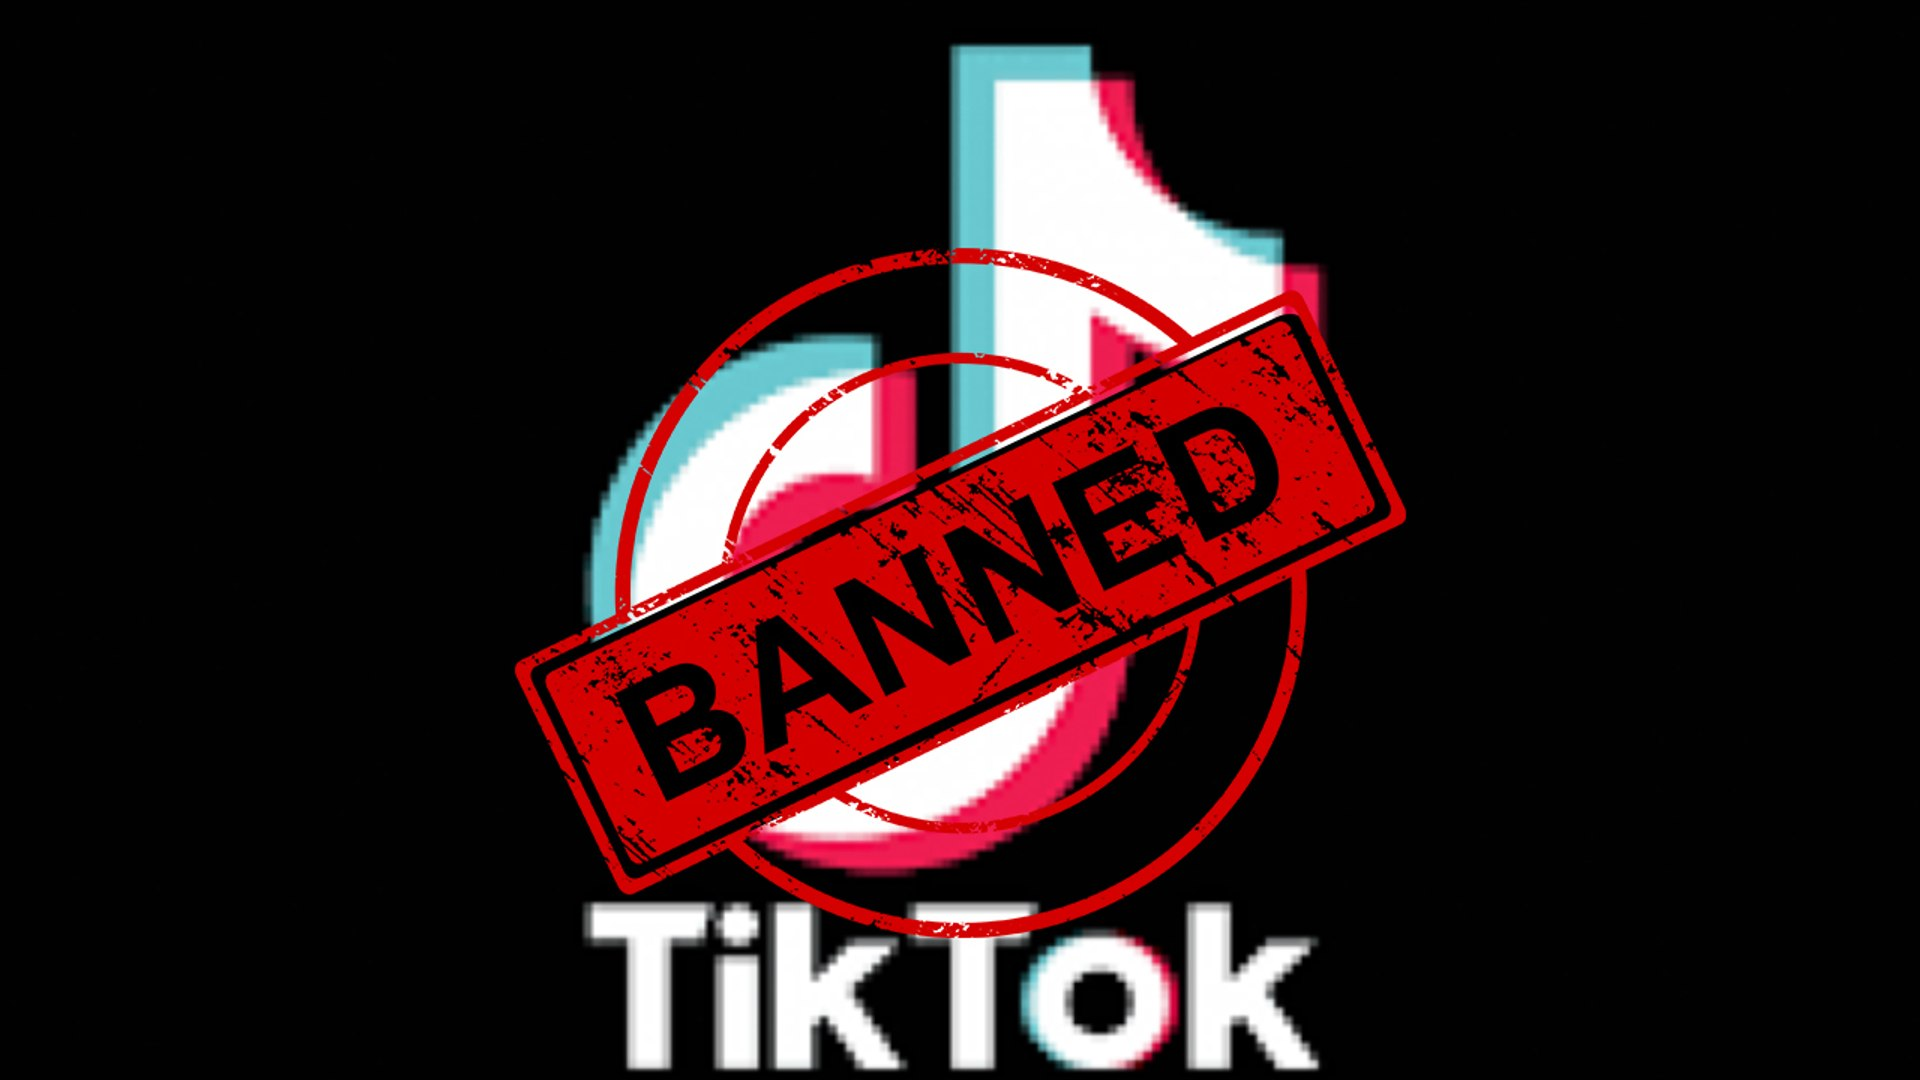 Govt bans 59 Chinese apps including Tik Tok, Likee, Mobile Legends at tension grips border